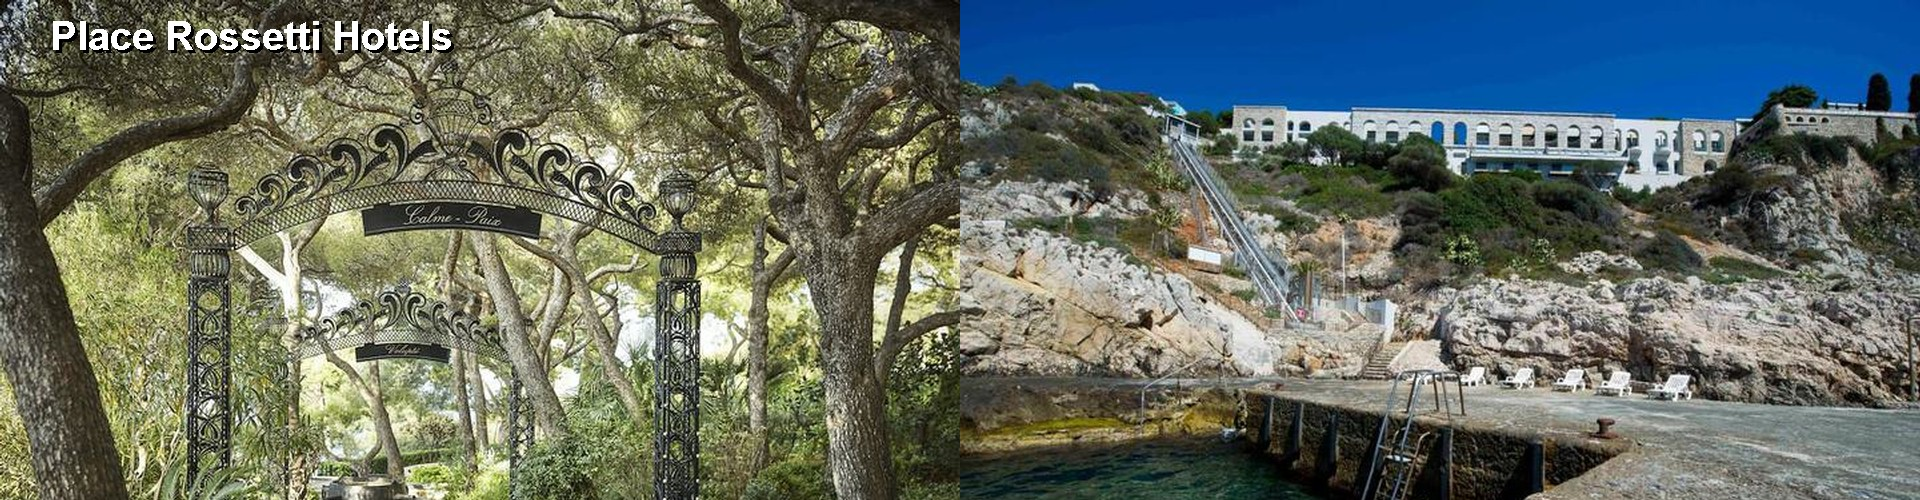 5 Best Hotels near Place Rossetti